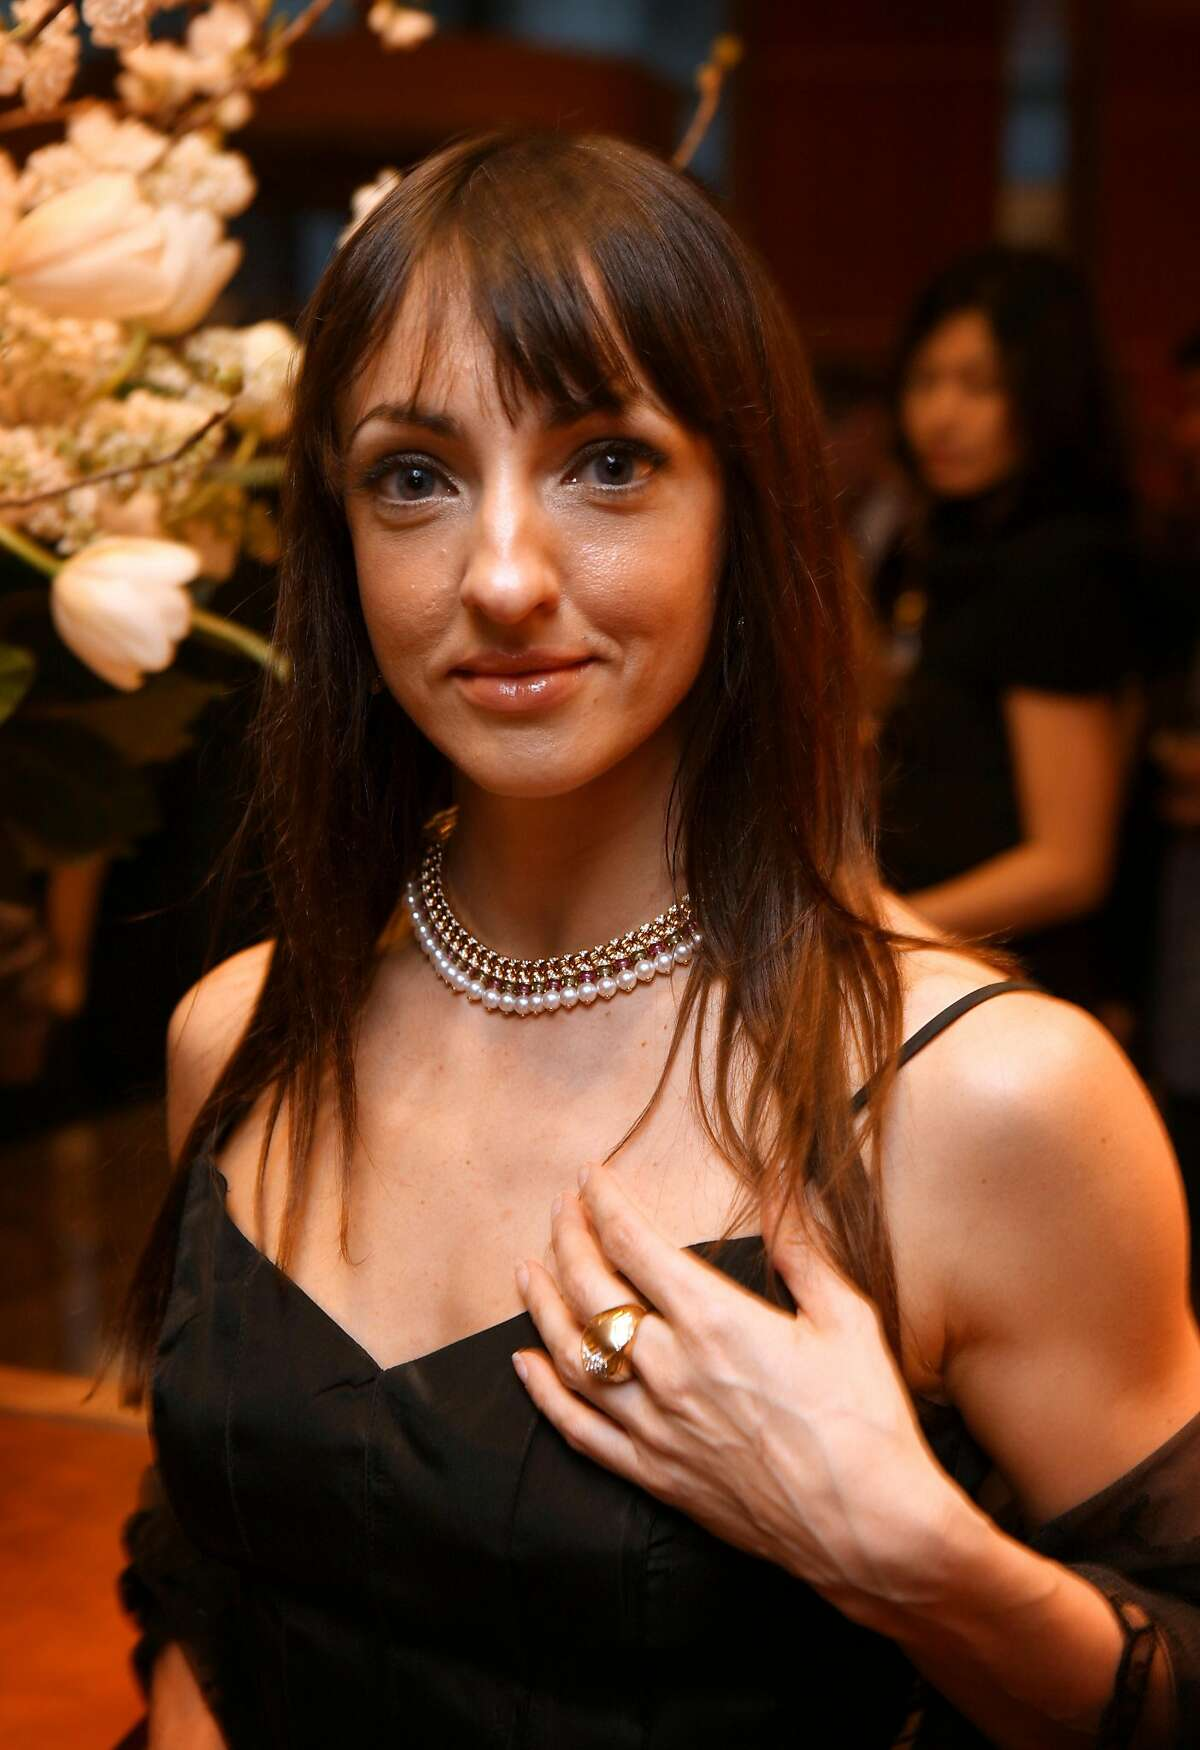 Lorena Feijoo, a ballerina at the SF Ballet, shows off the Parentesi (NEED TO DOUBLE CHECK NAME, NOT SURE ON SPELLING), necklace at the kickoff party for the San Francisco Ballet's New Works Festival held at the Bulgari shop in San Francisco, Calif., Thursday, March 27, 2008. Thor Swift For The San Francisco Chronicle